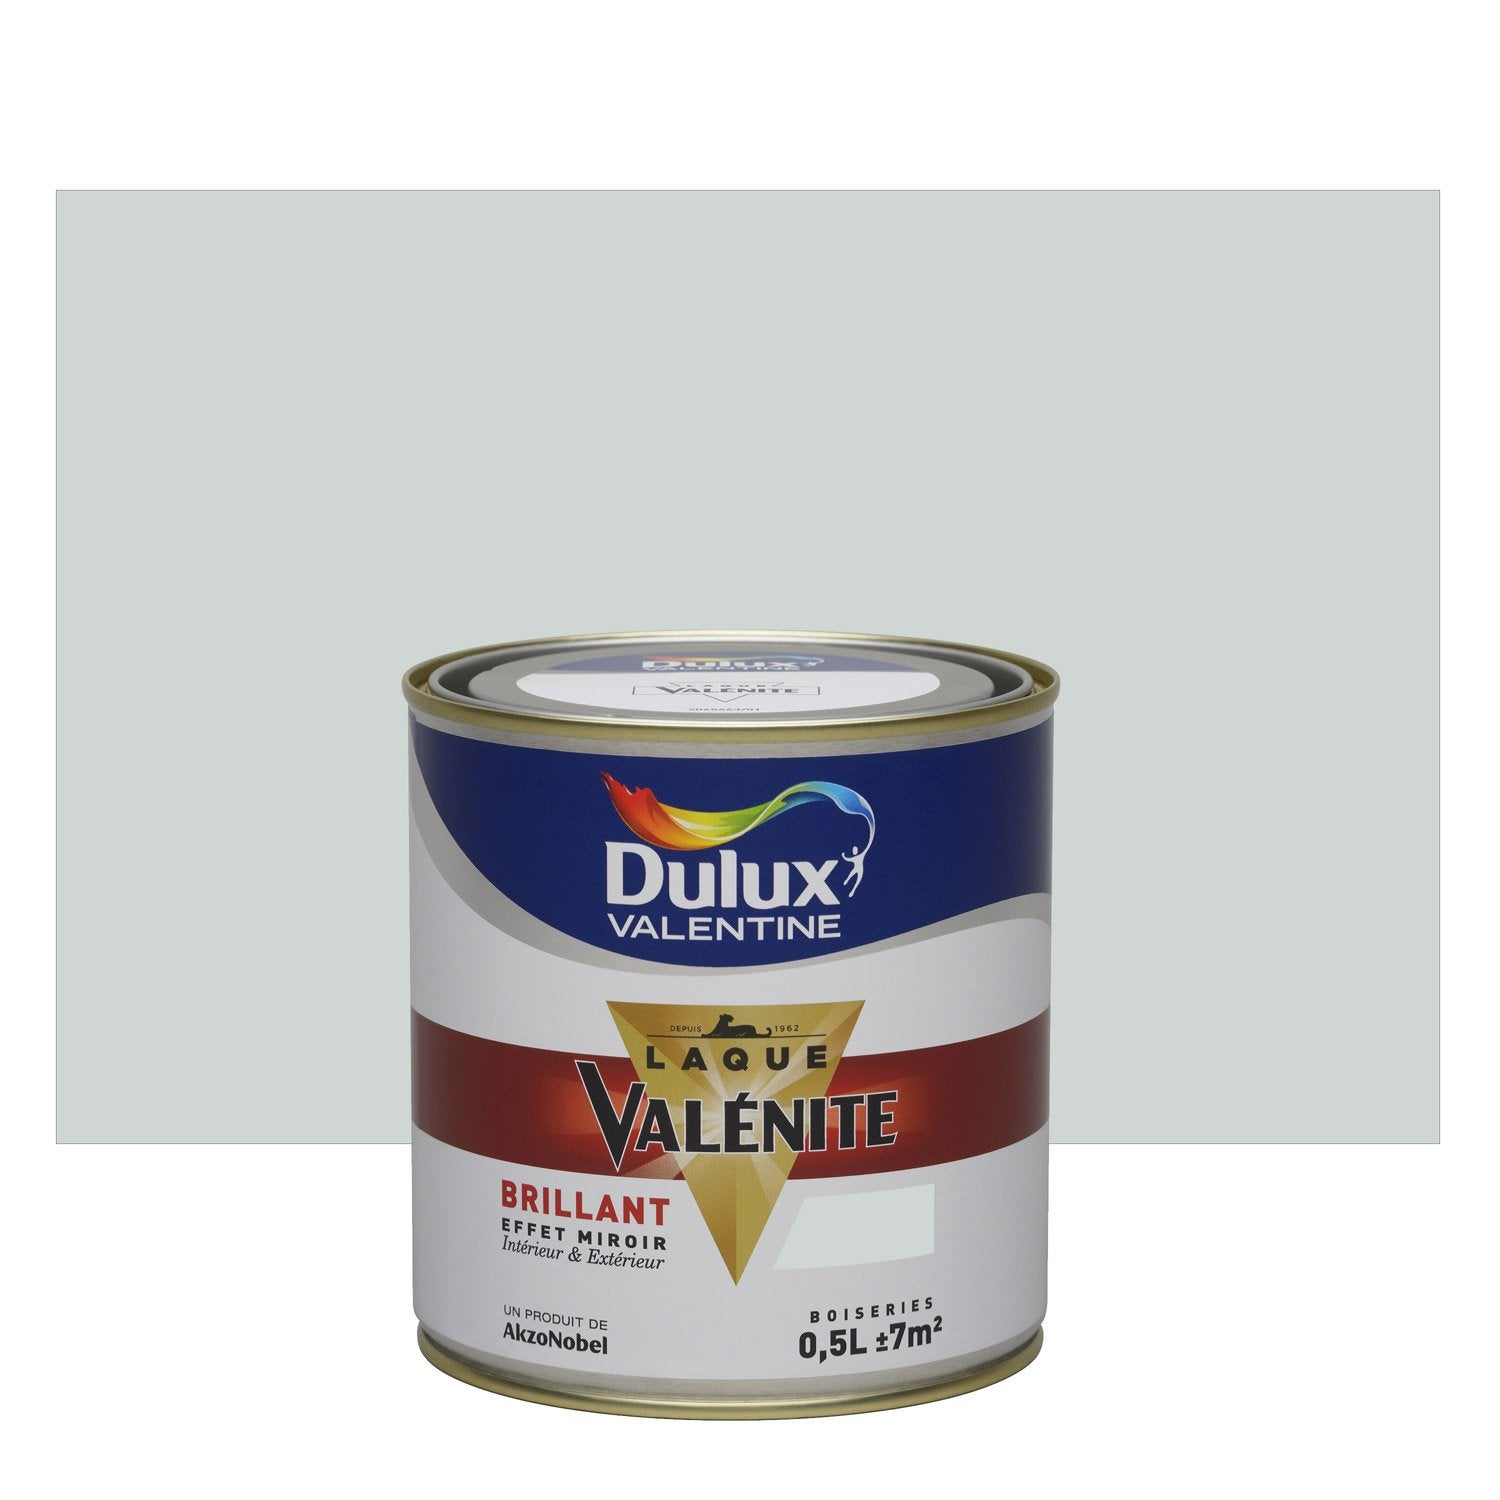 peinture gris perle brillant dulux valentine val nite 0 5 l leroy merlin. Black Bedroom Furniture Sets. Home Design Ideas